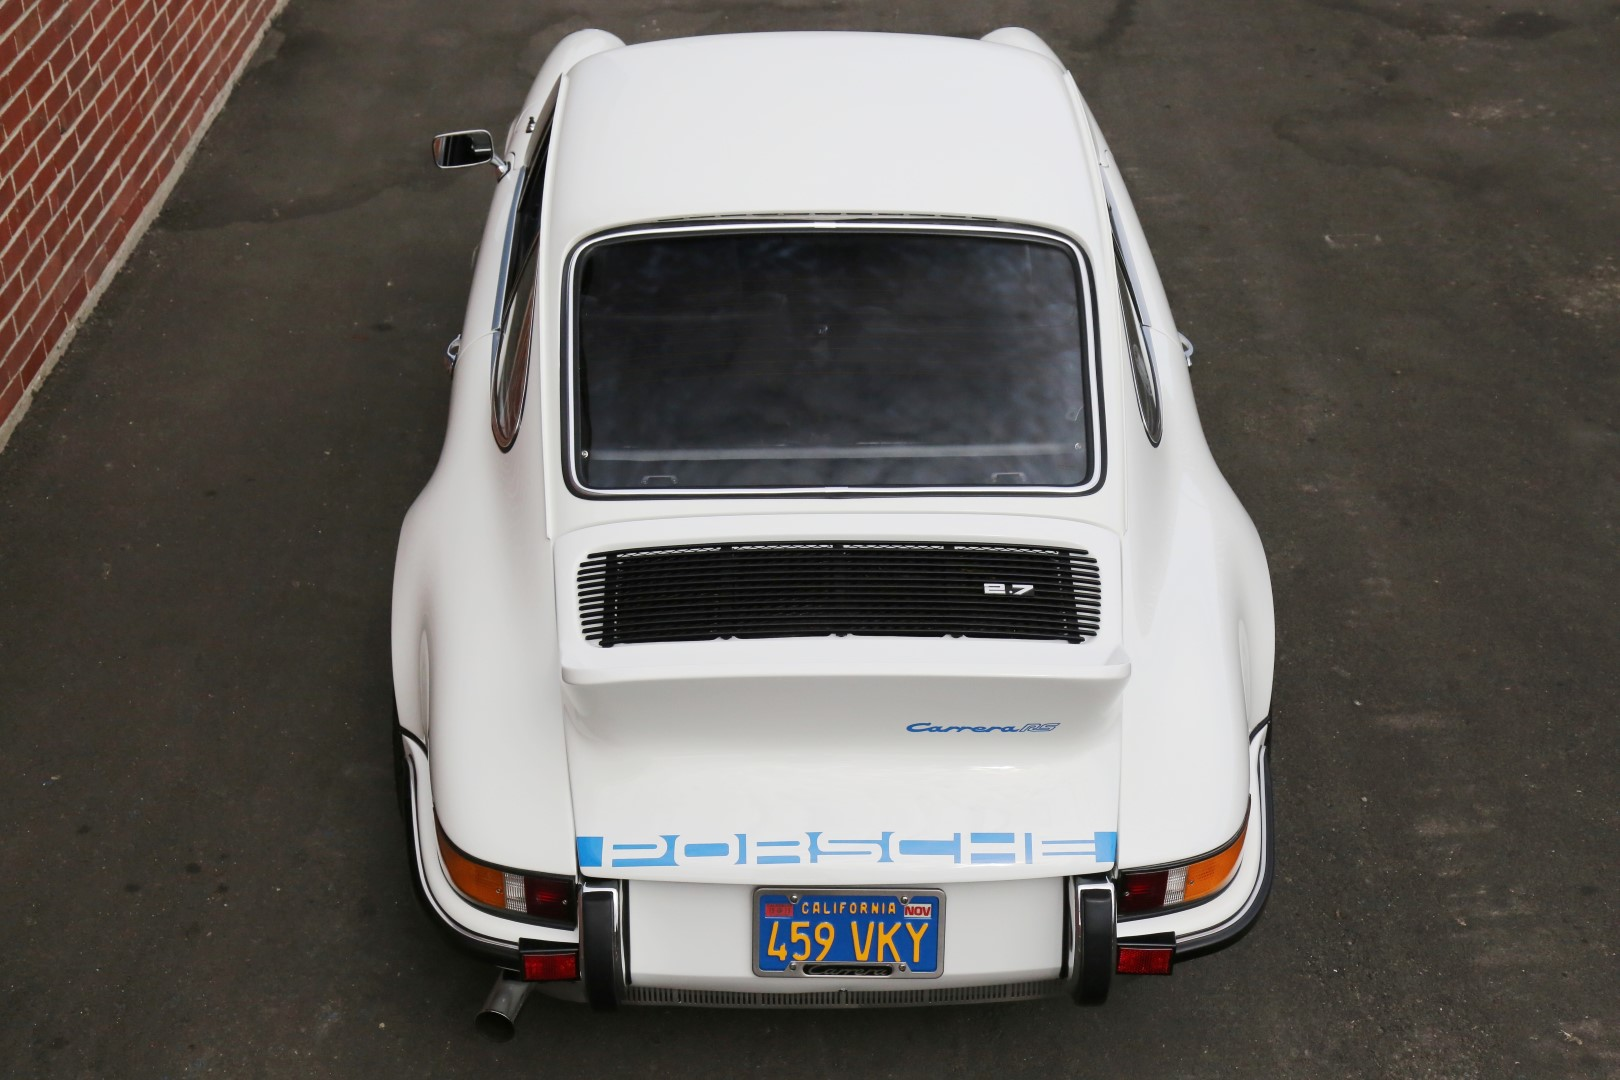 Porsche-911-Carrera-RS-2.7-1973-for-sale-3